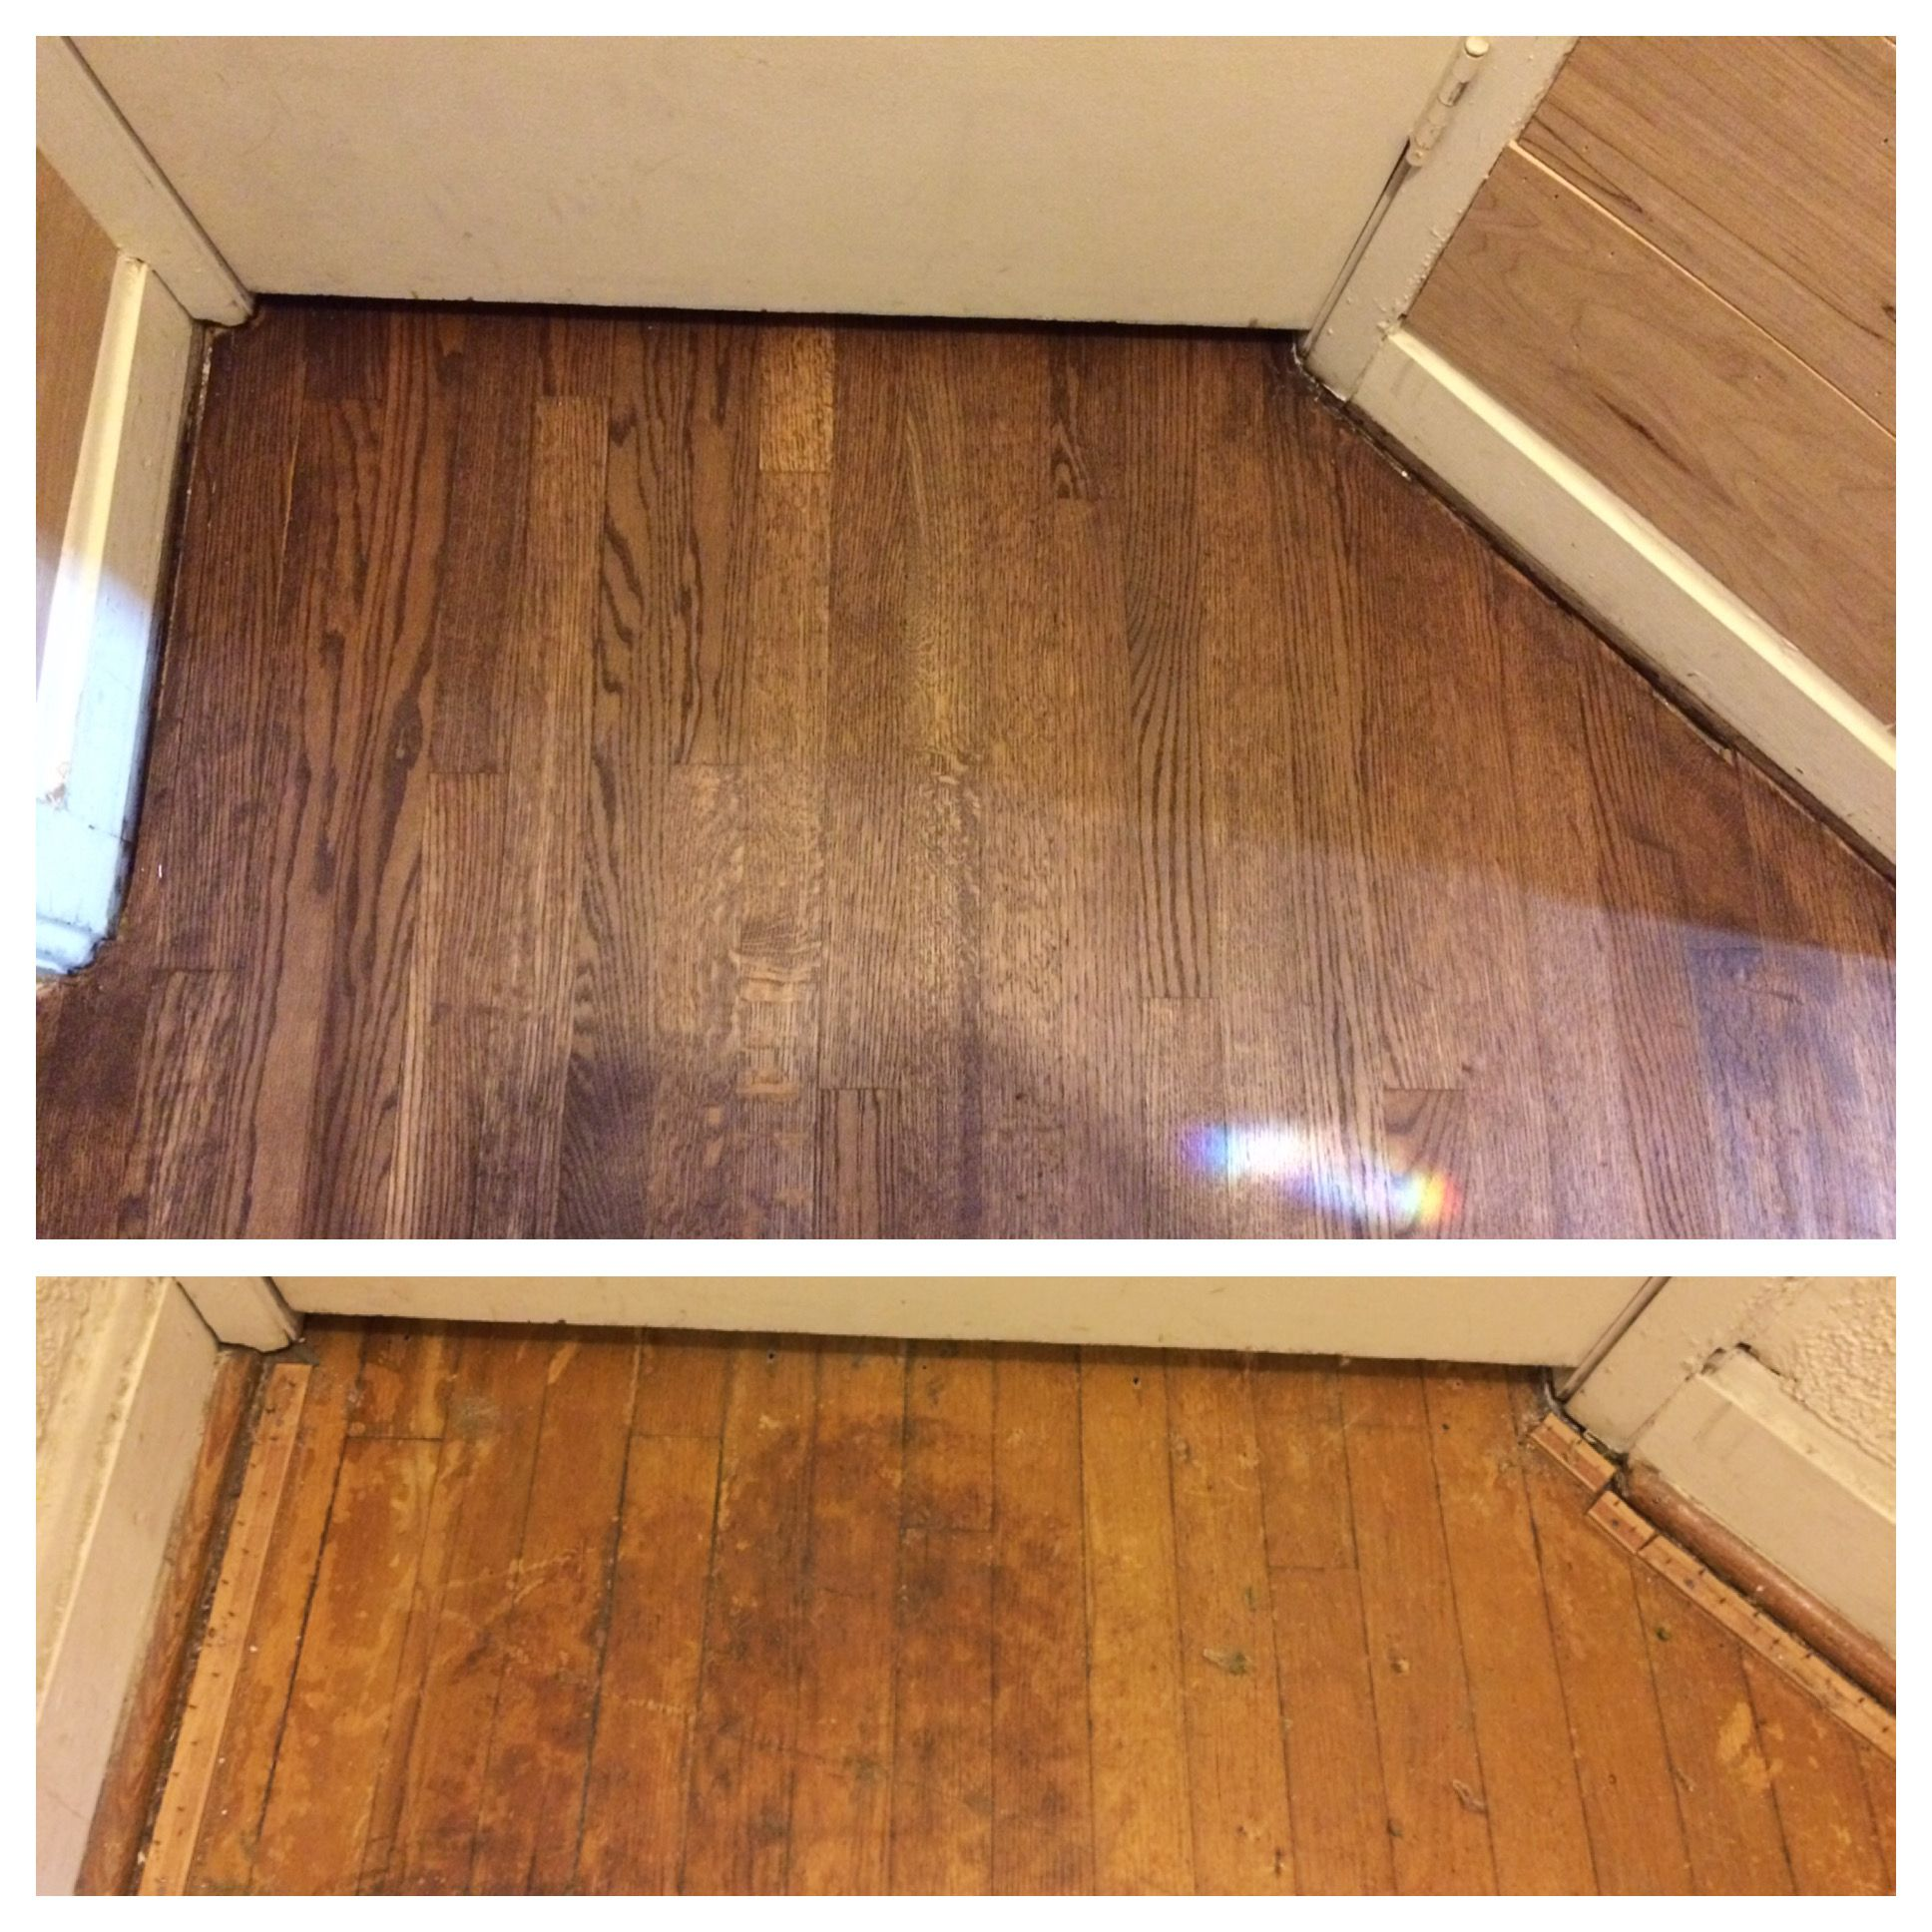 Red Oak Floor Refinished Before And After Sanded Out Water Stains And Finished Rubio Monocoat Chocola Refinishing Floors Diy Wood Floors Staining Wood Floors